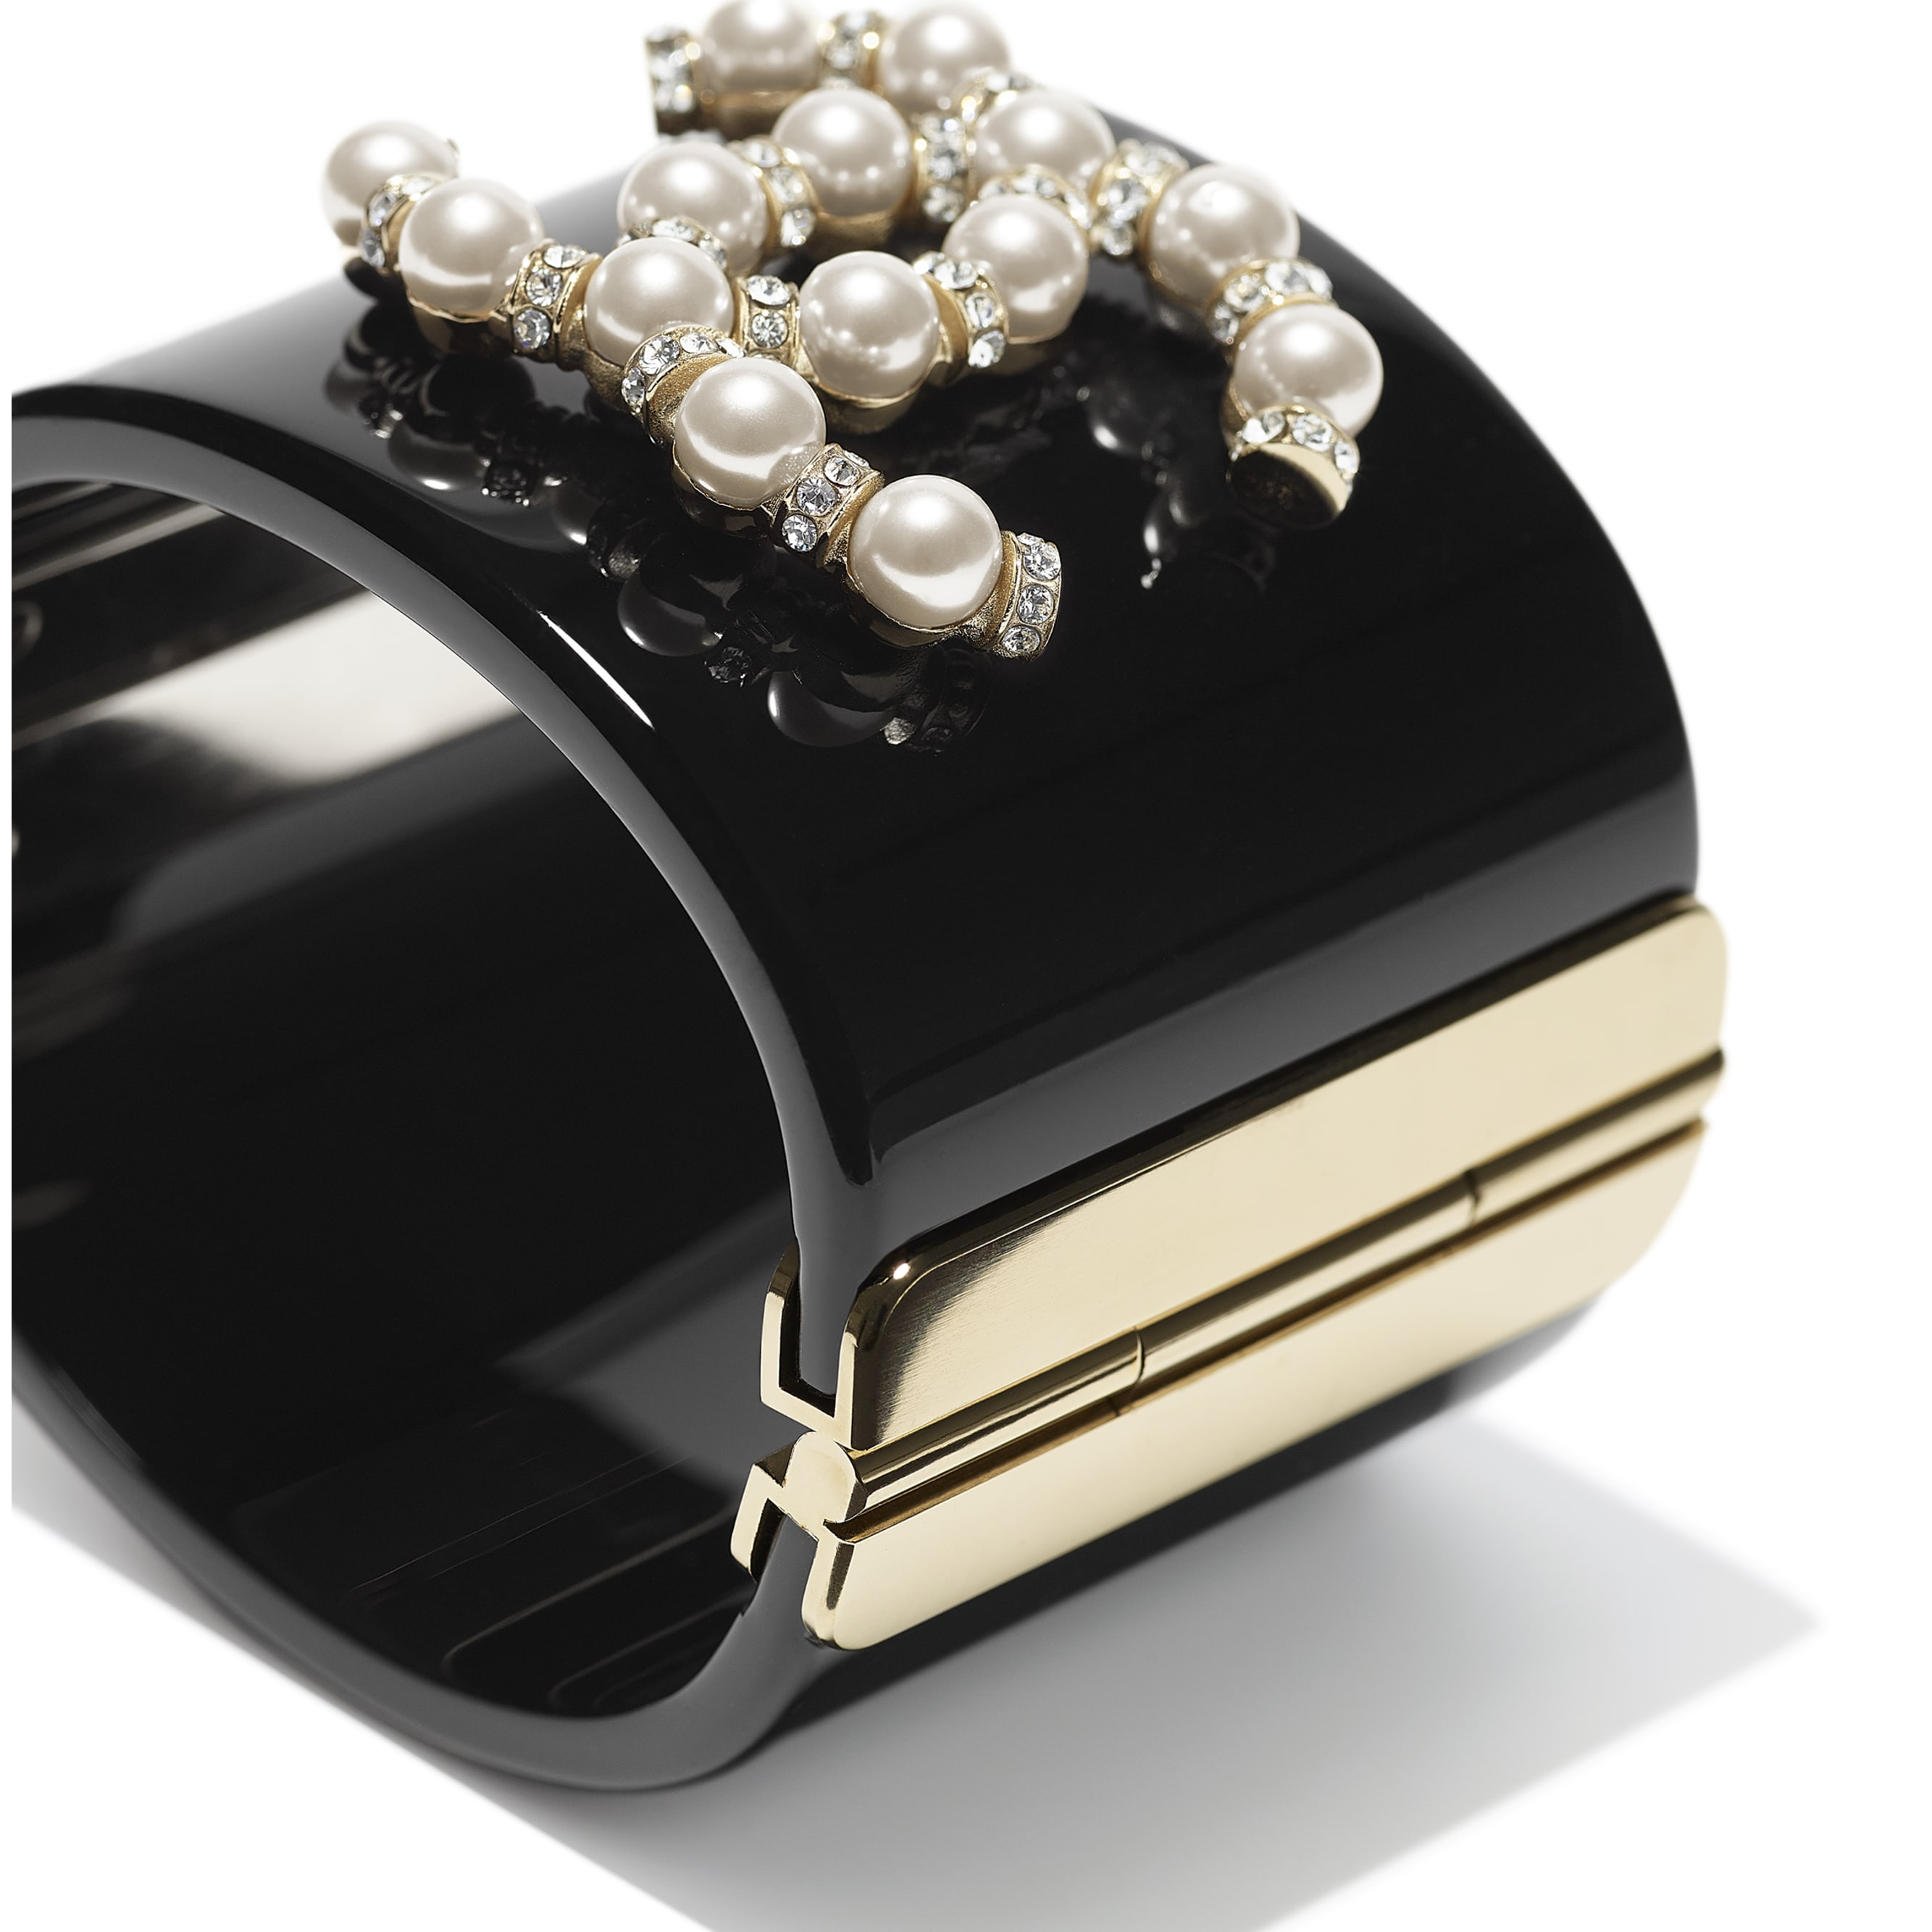 Cuff - Black, Pearly White, Crystal & Gold - Resin, Glass Pearls, Diamanté & Metal - CHANEL - Alternative view - see standard sized version